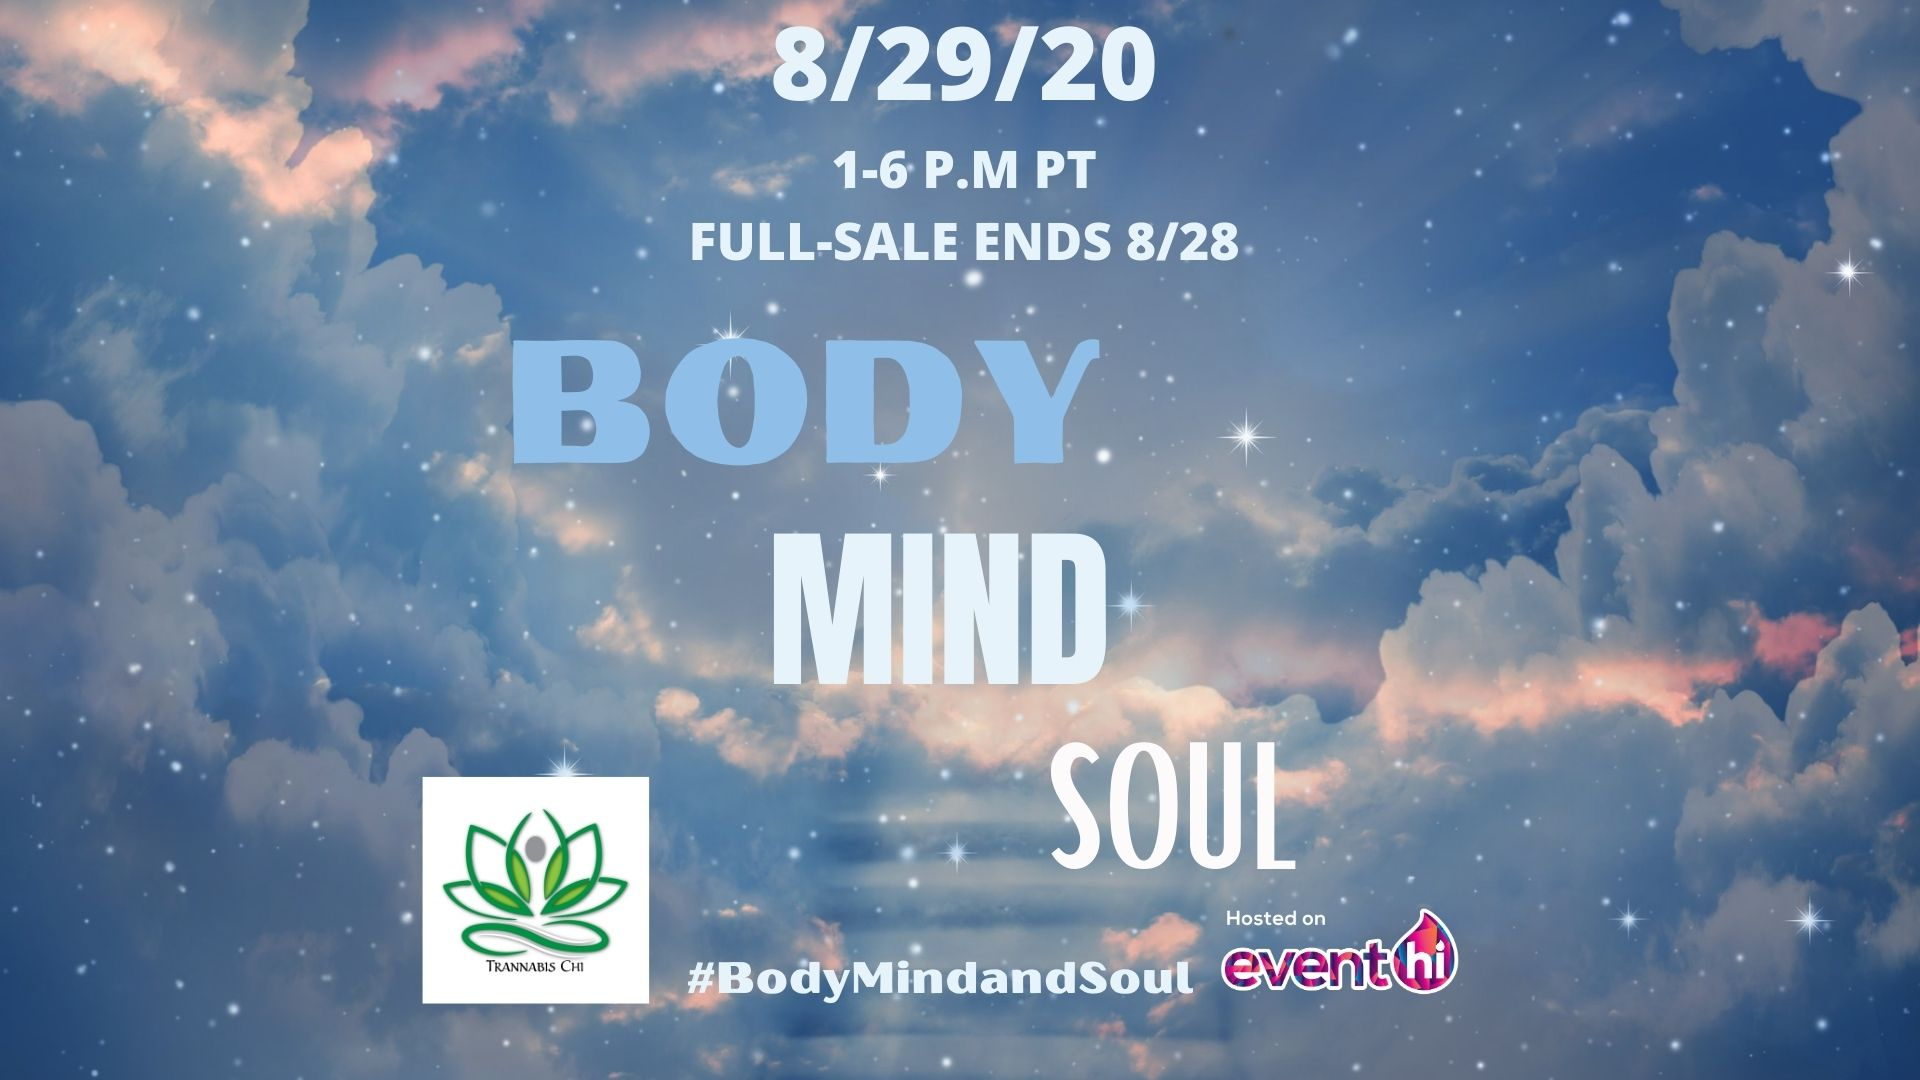 Body, Mind, and Soul: A Virtual Afternoon of Setting Intentions and Purpose